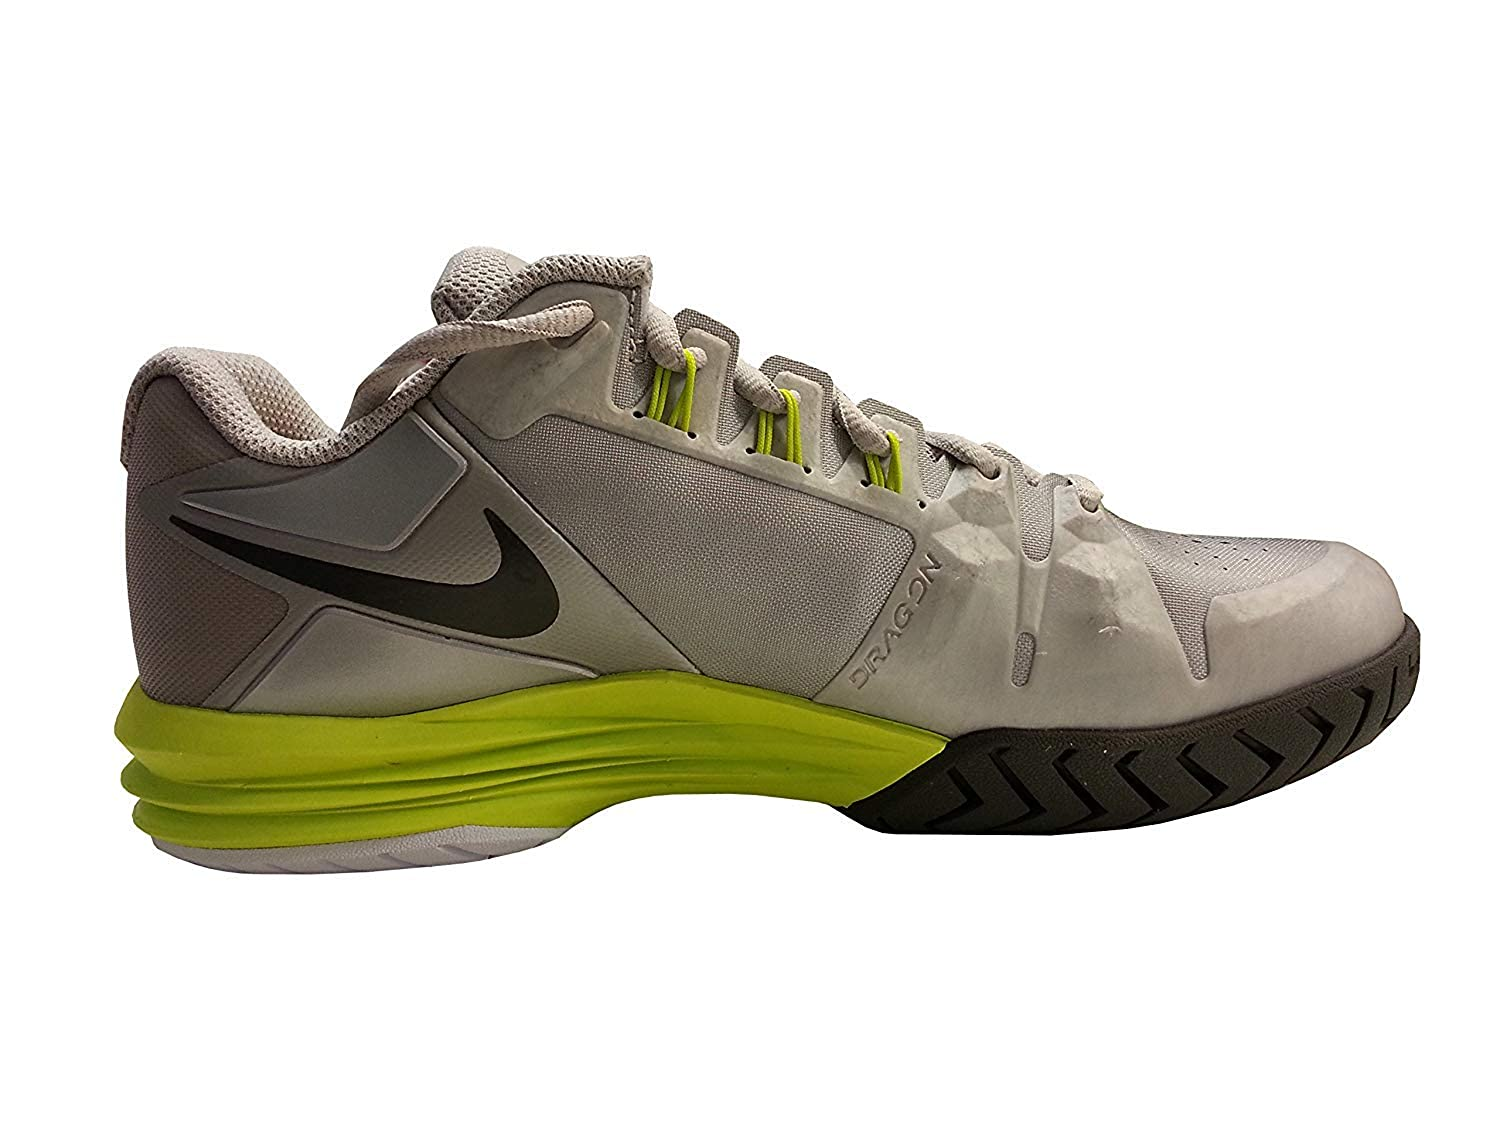 newest 3b98c 1b364 Amazon.com   NIKE Women s WMNS Lunar Ballistec, METALLIC IRON ORE DARK BASE  GREY-VENOM GREEN, 9 M US   Shoes